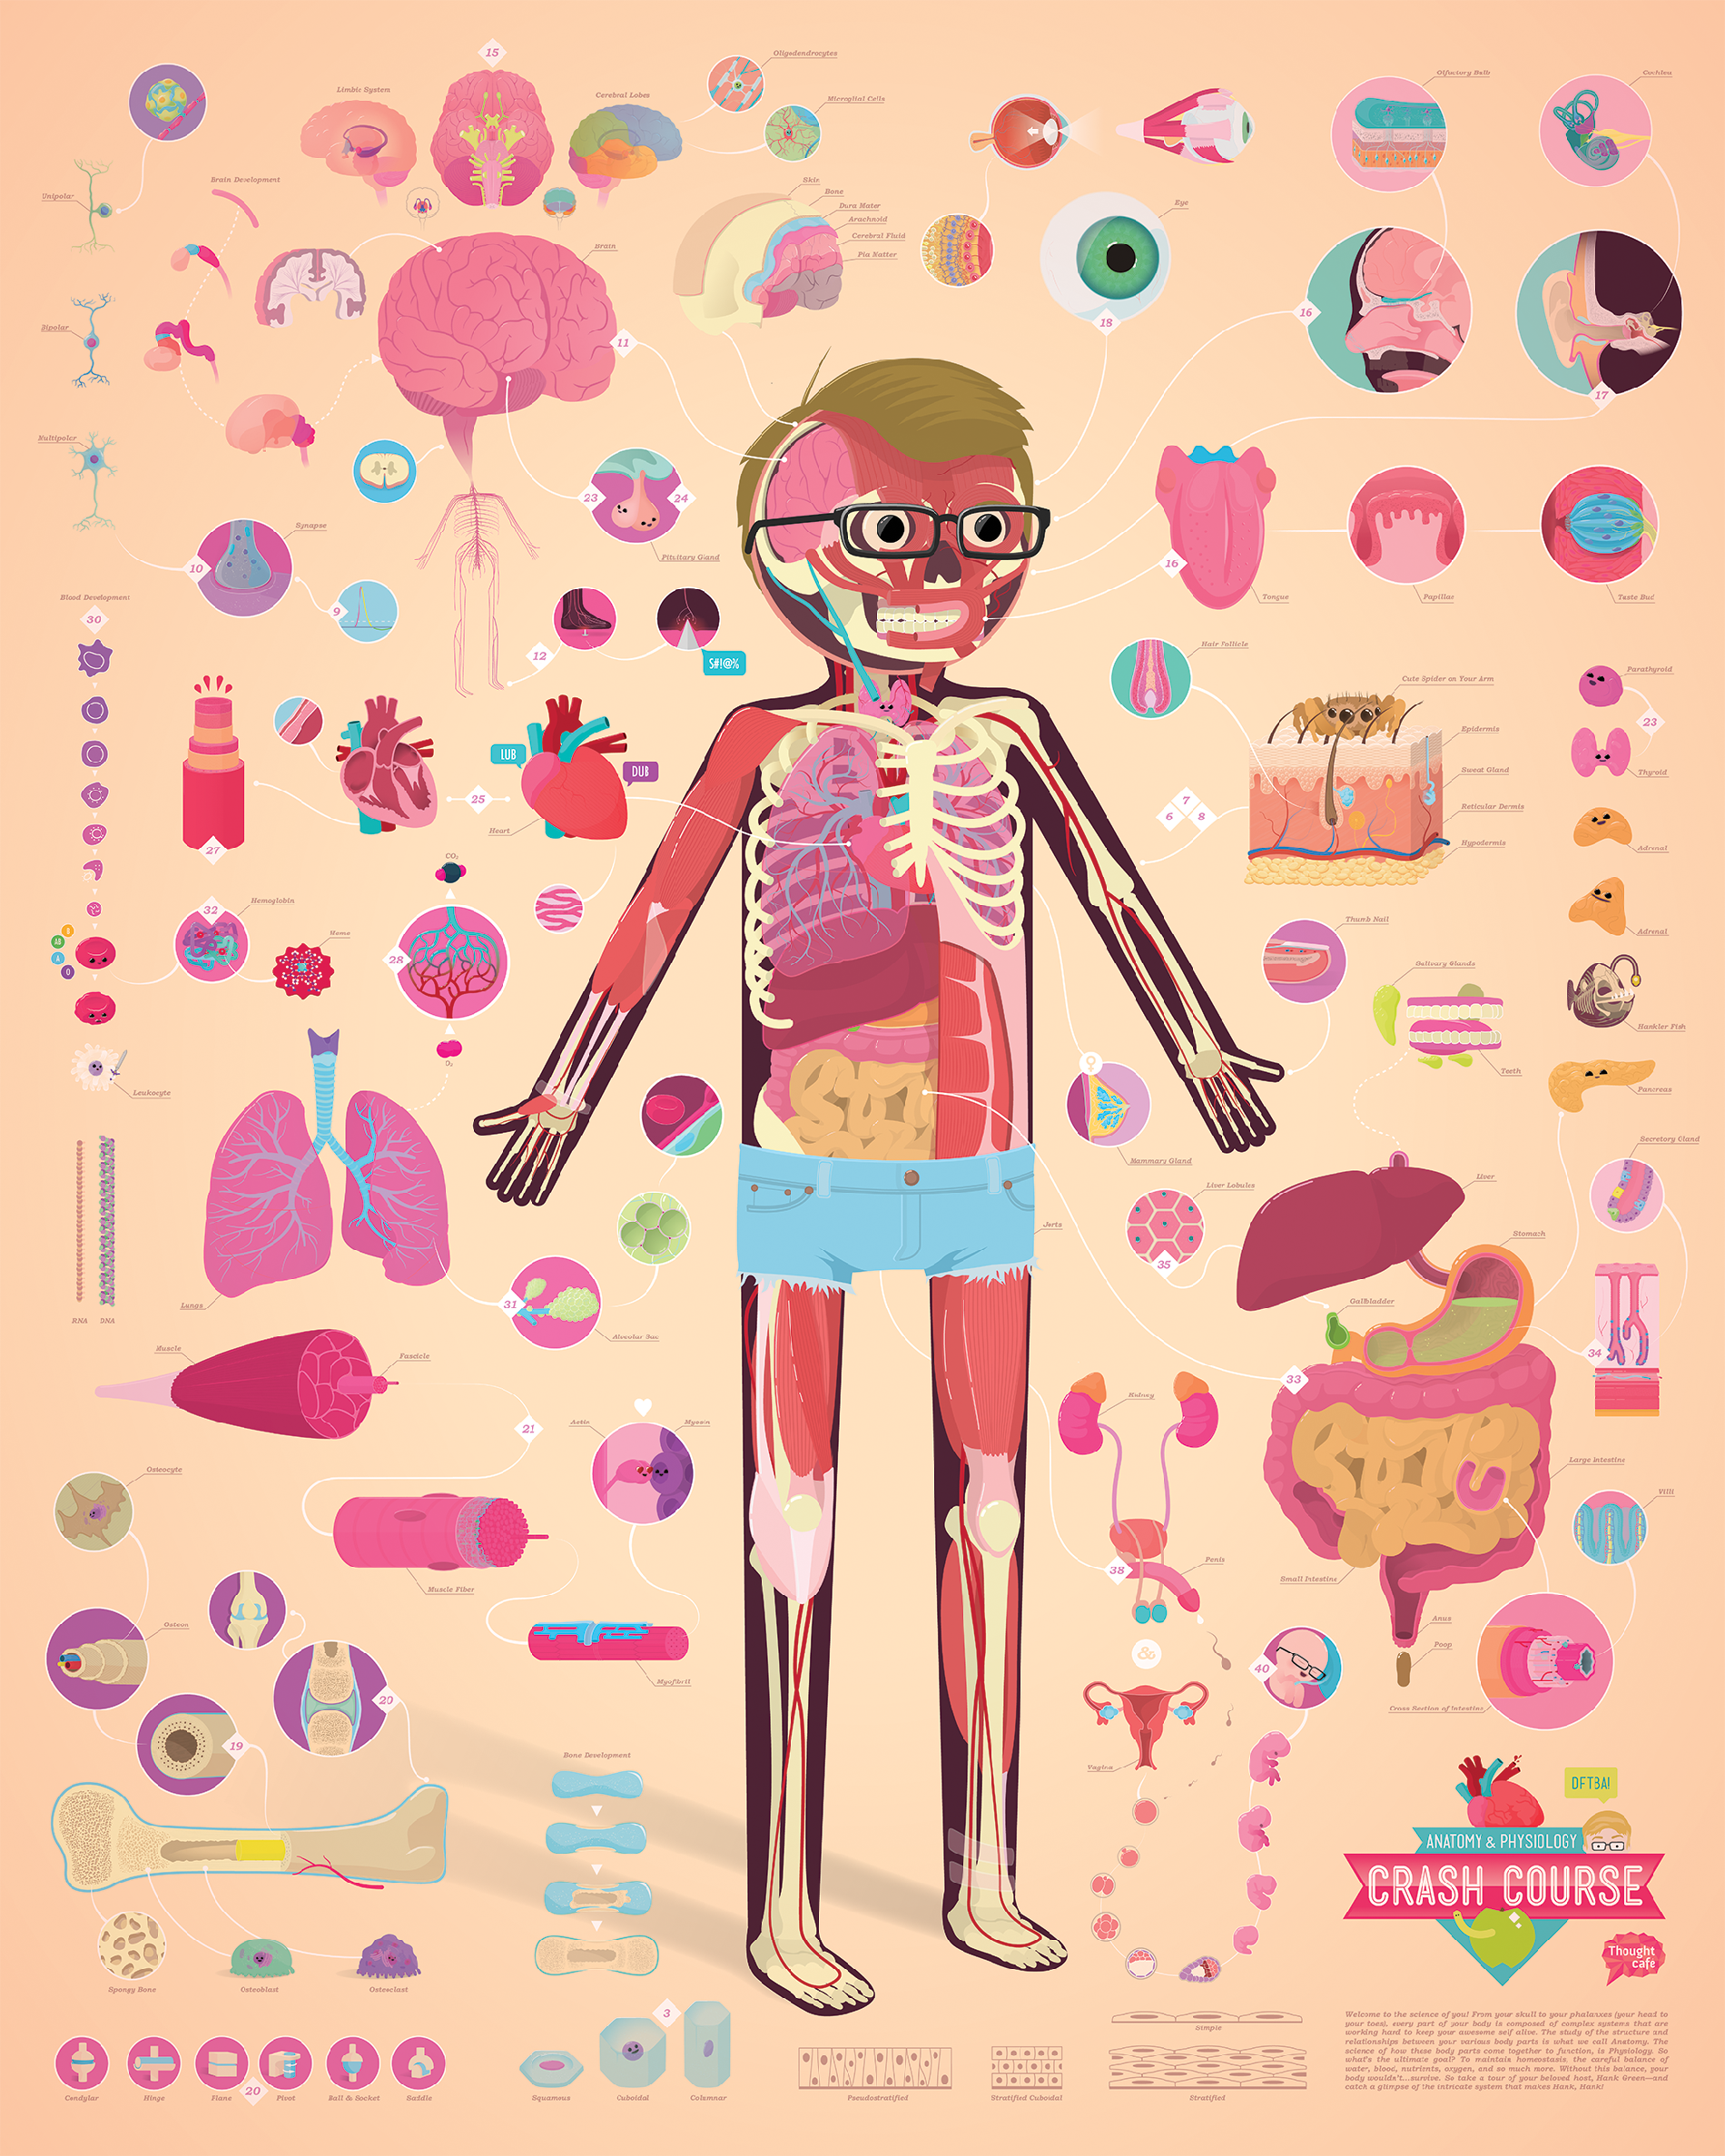 Crash Course Anatomy Poster — Information is Beautiful Awards